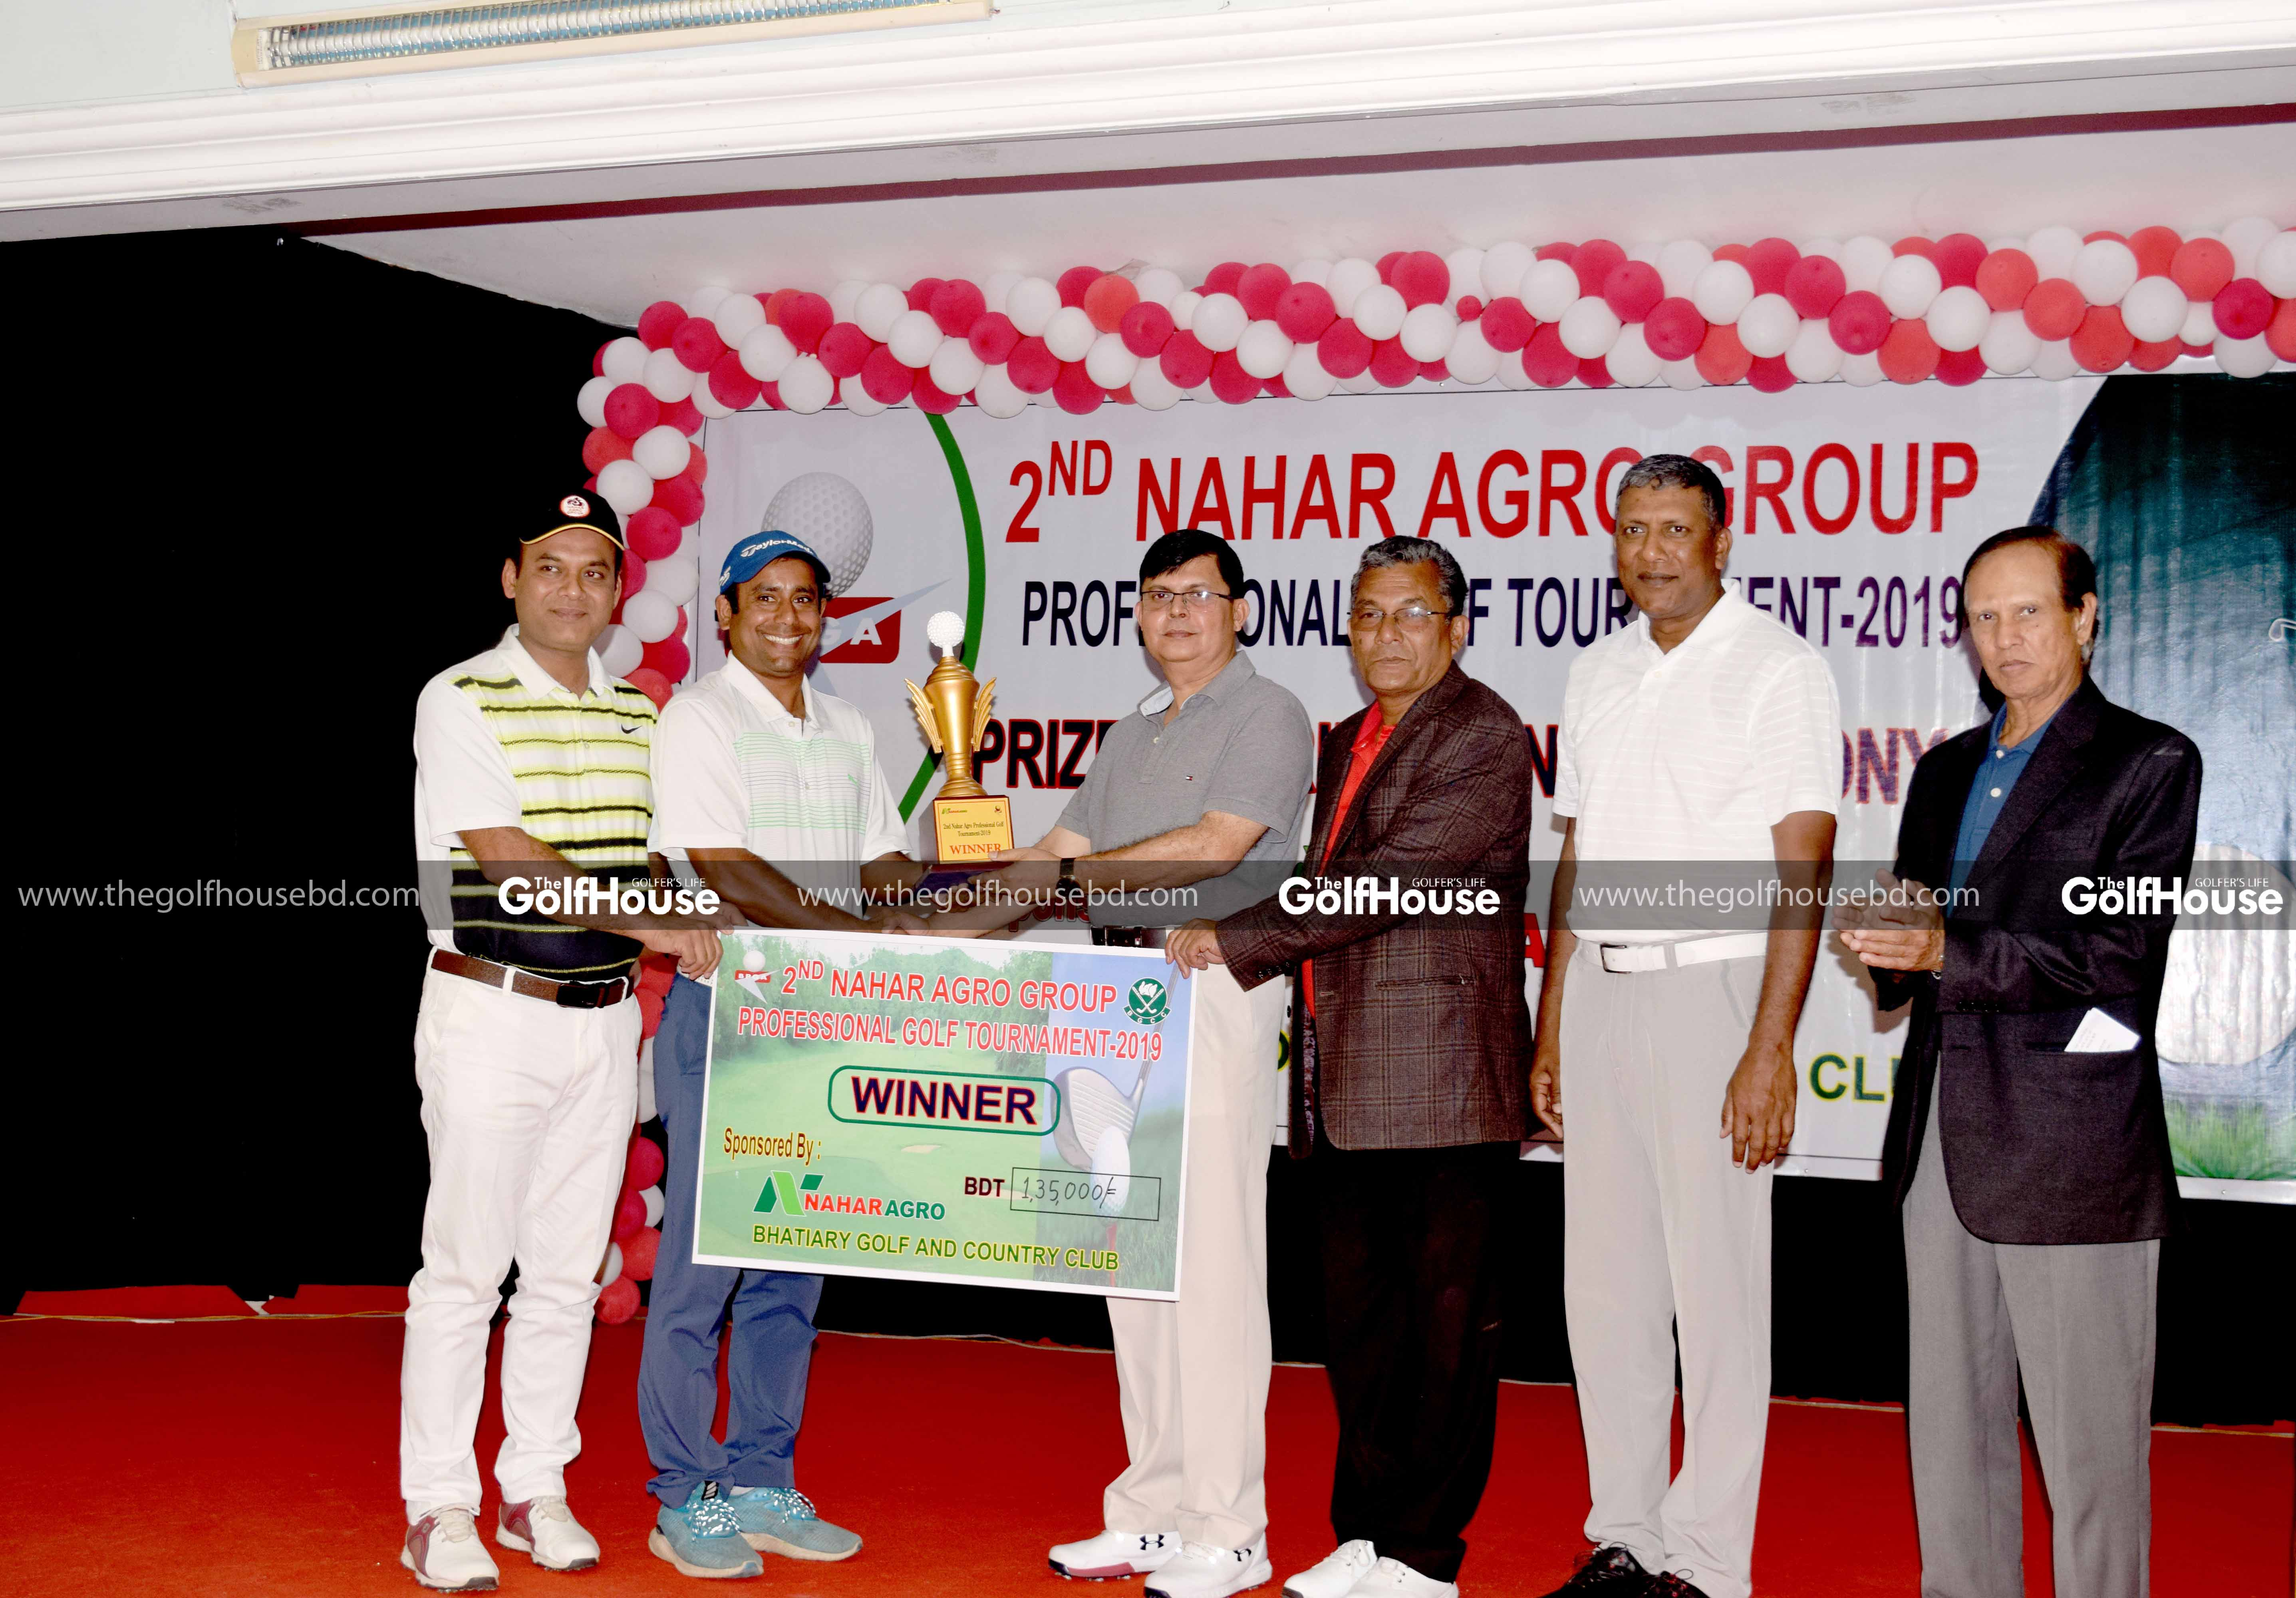 Bangladesh's 2nd highest ranked player Md Shakhawat Hossain wins the Nahar Agro Group Pro Tournament by 3 shots at the scenic Bhatiary Golf and Country Club.